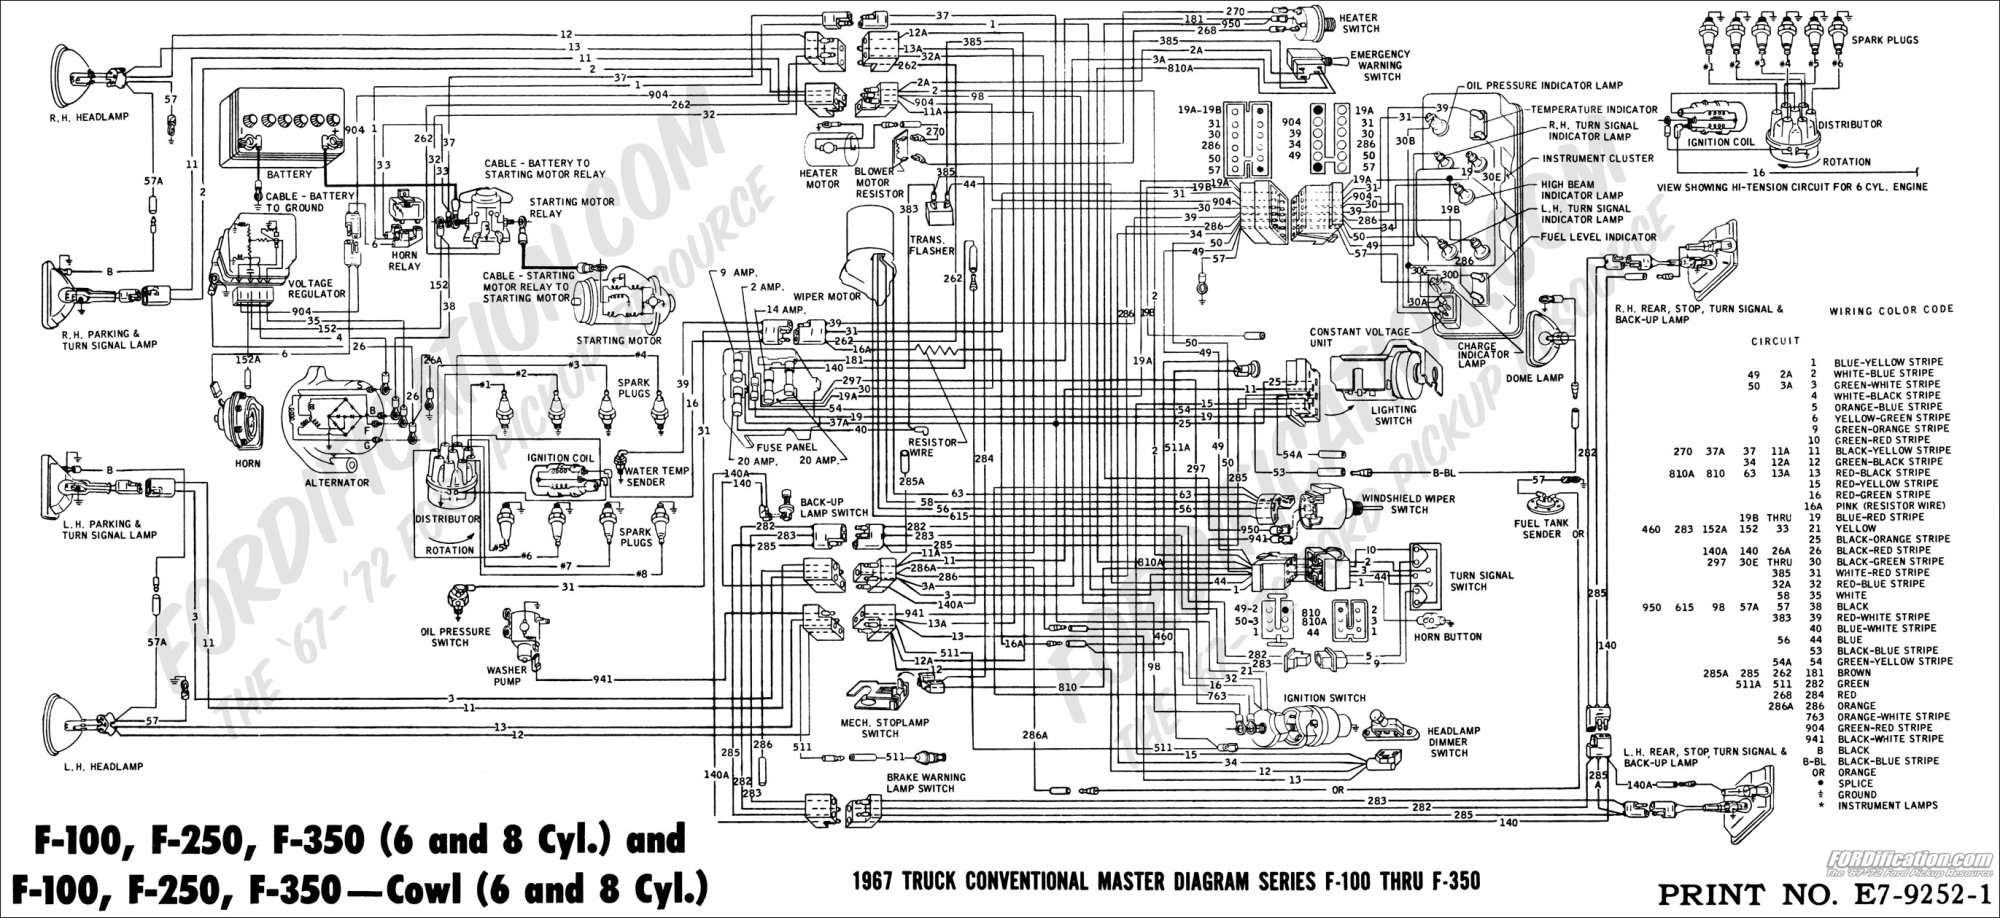 hight resolution of 1990 ford fuel system diagram wiring diagramwrg 0526 1990 ford f 150 fuel pump wiring1990